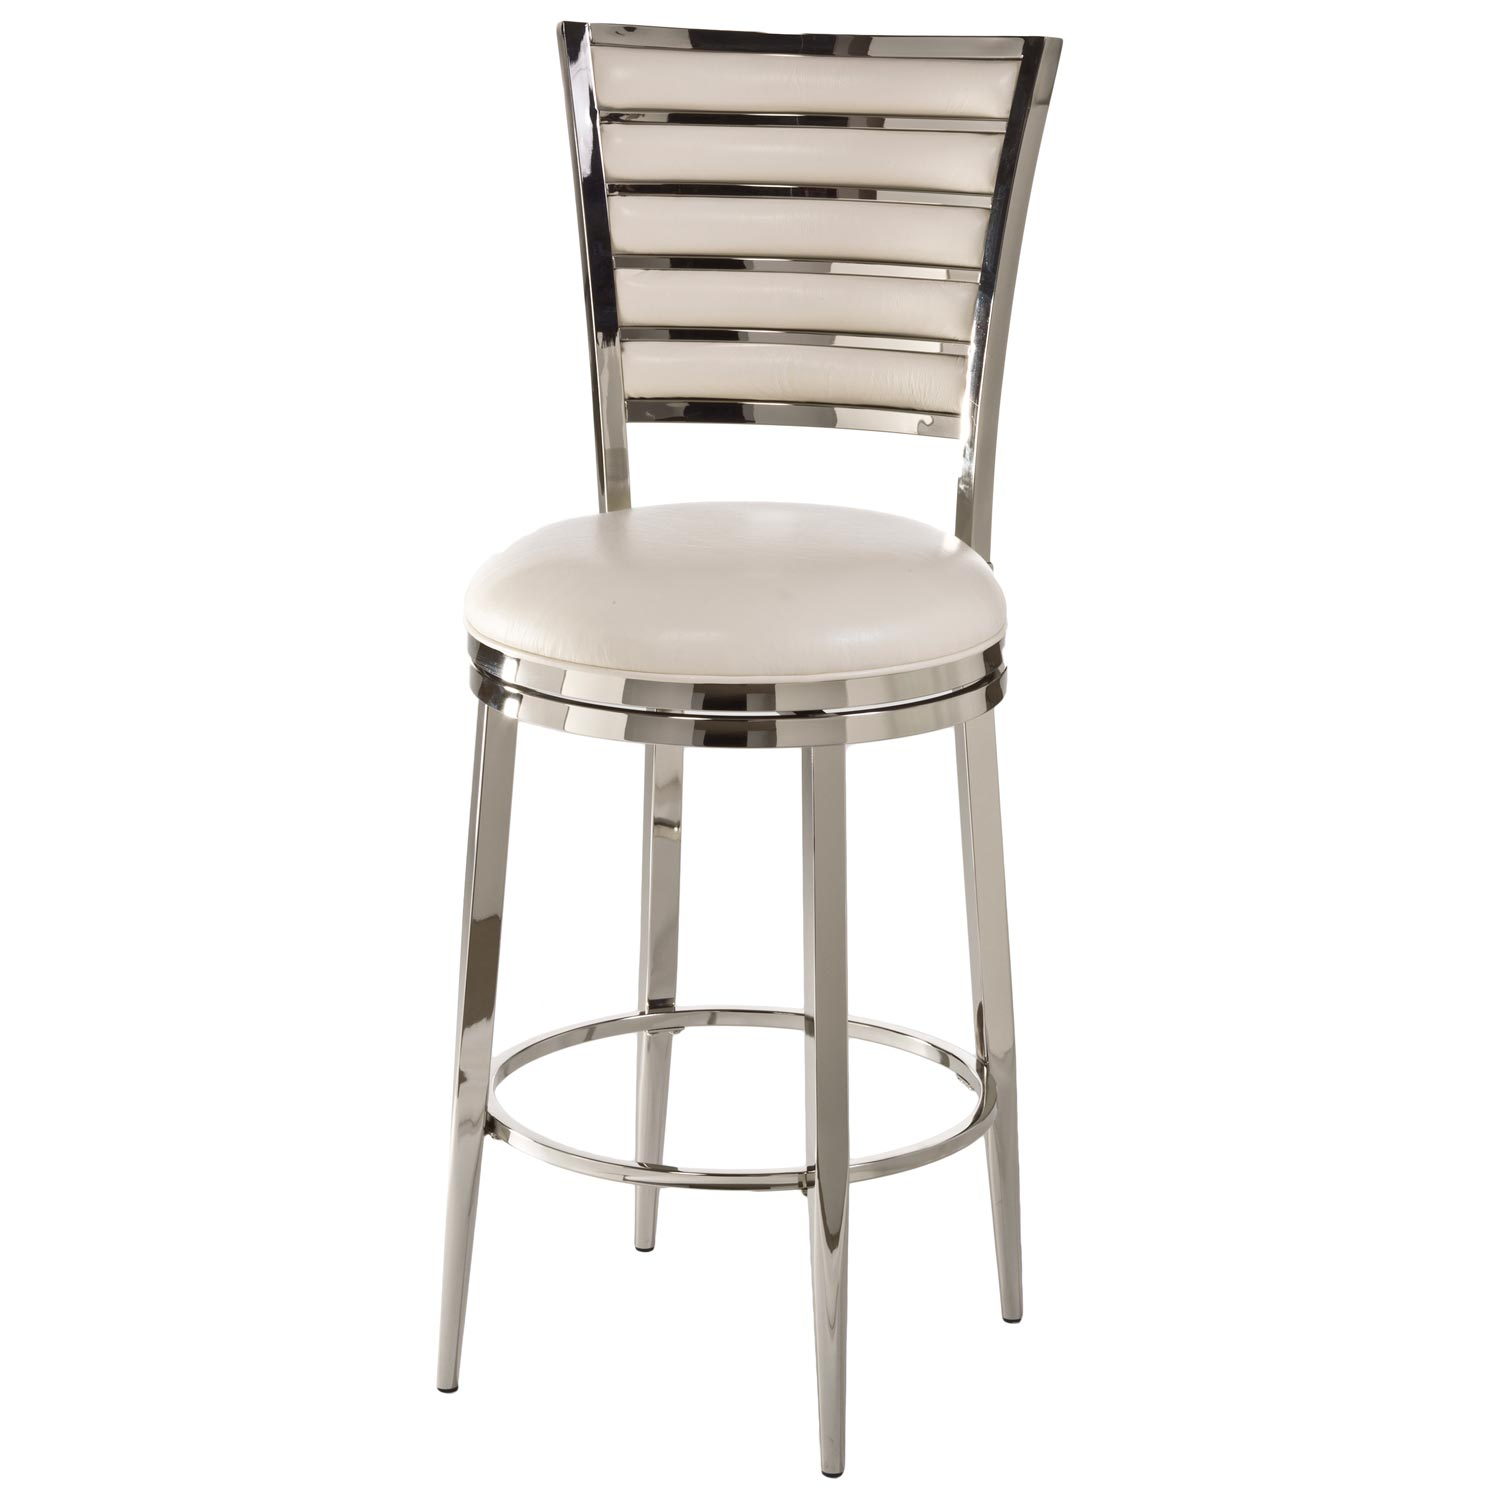 Rouen 30quot Swivel Bar Stool Polished Nickel Finish DCG  : 5319 831 from www.dcgstores.com size 1500 x 1500 jpeg 89kB